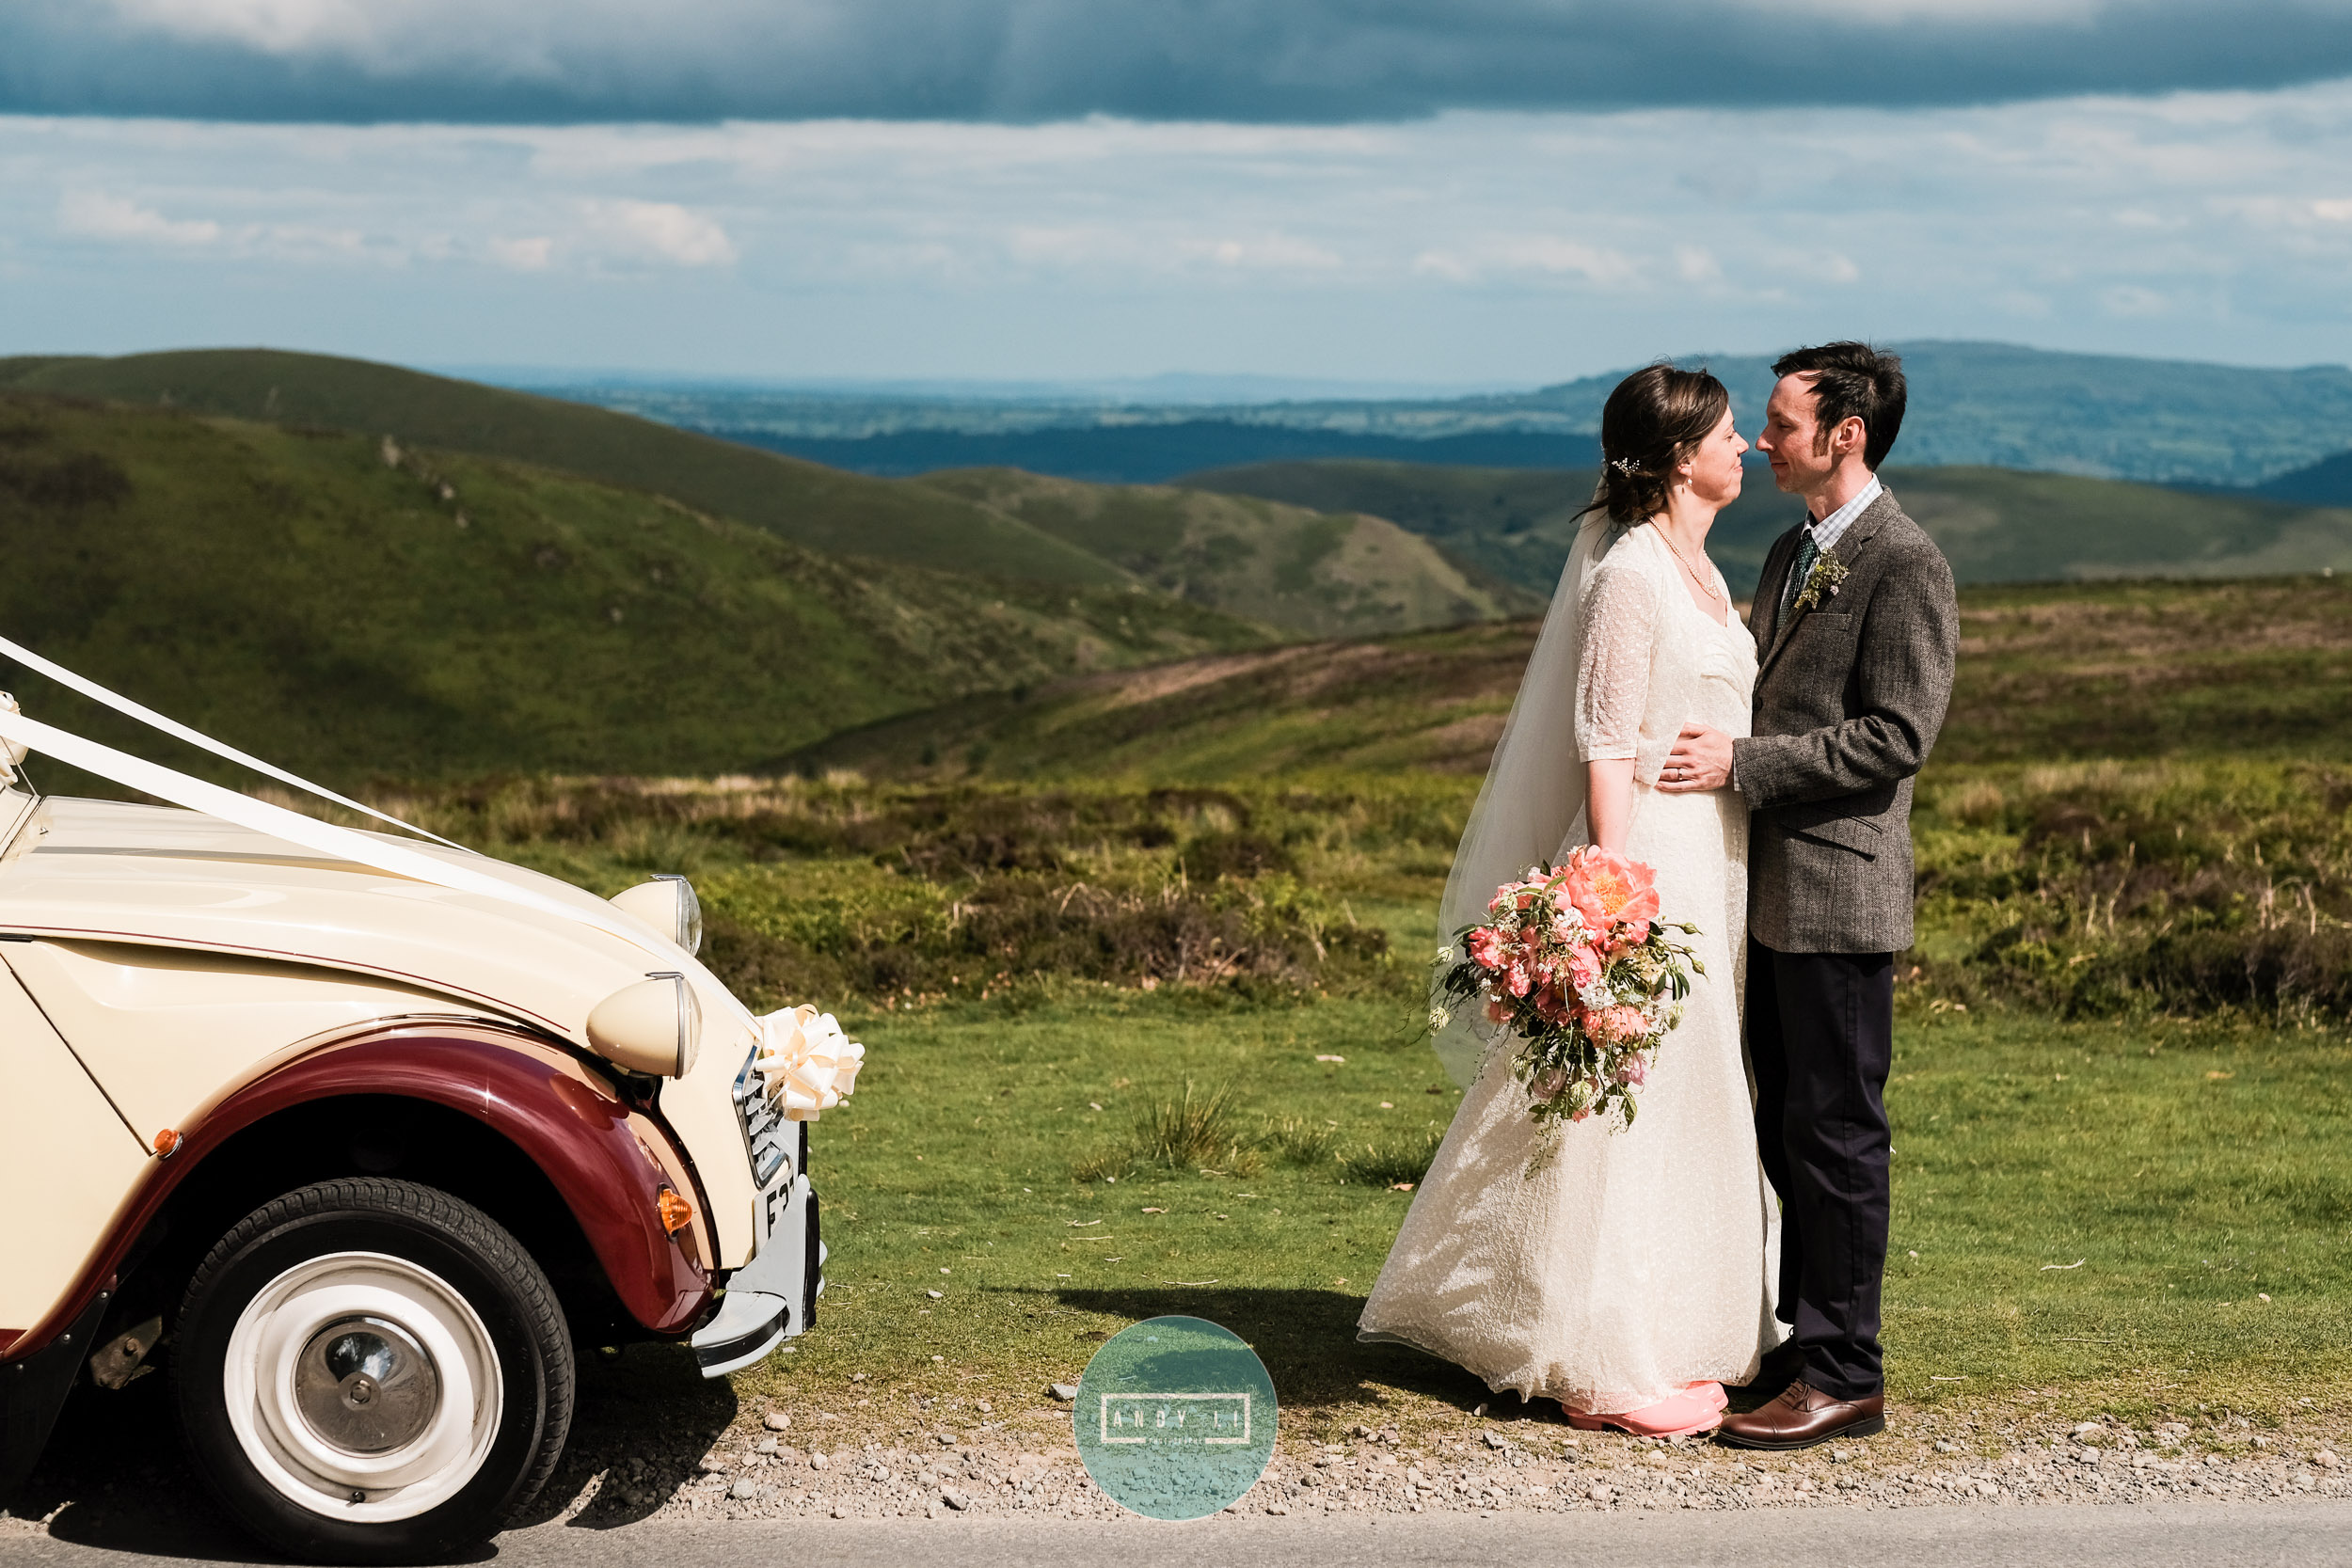 Shropshire Hills Humanist Outdoors Wedding Photography-022-DSCF9307.jpg